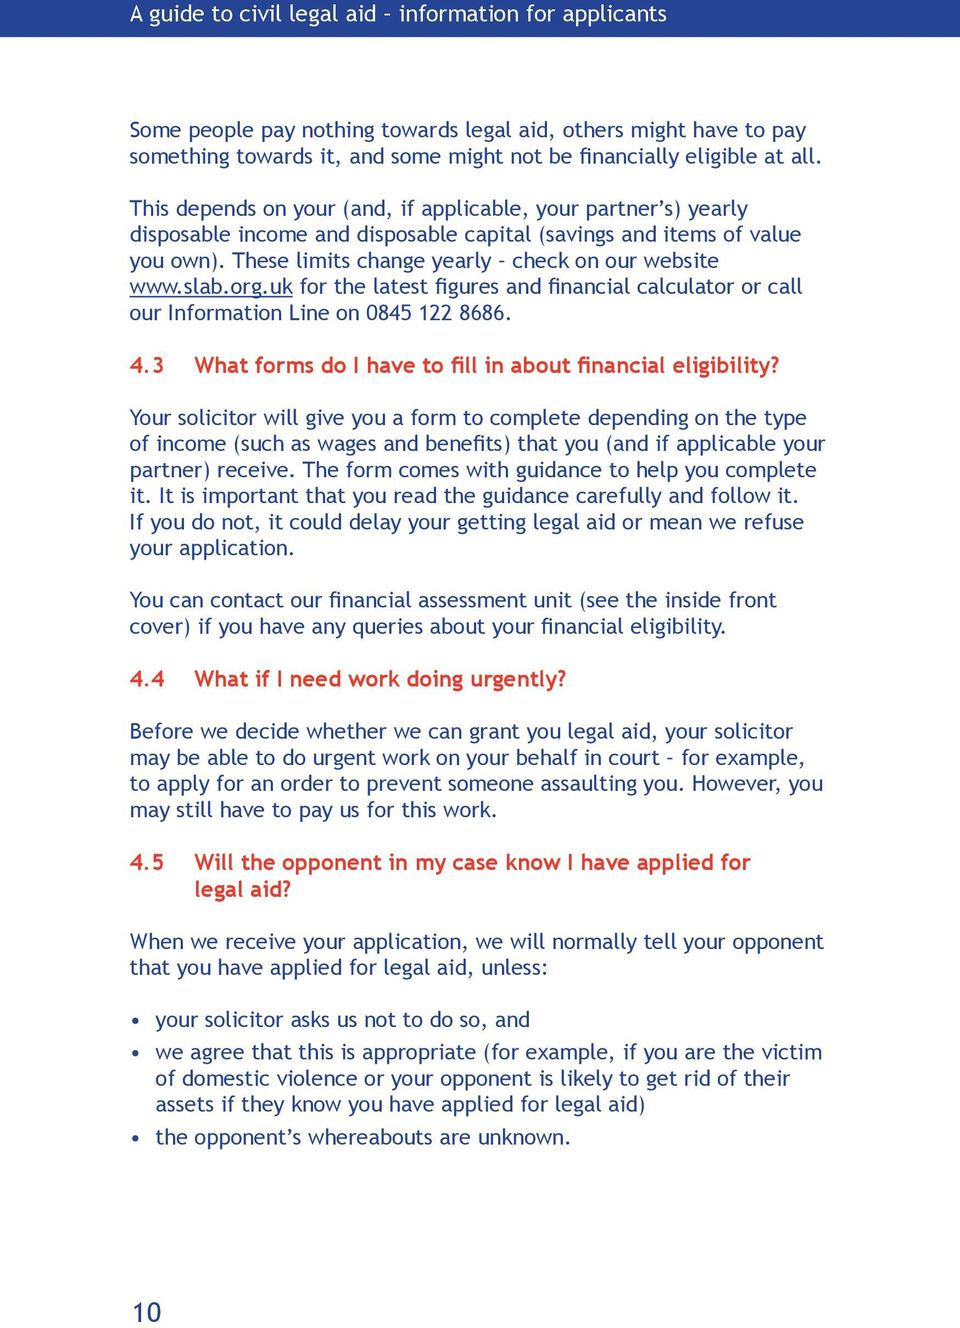 slab.org.uk for the latest figures and financial calculator or call our Information Line on 0845 122 8686. 4.3 What forms do I have to fill in about financial eligibility?